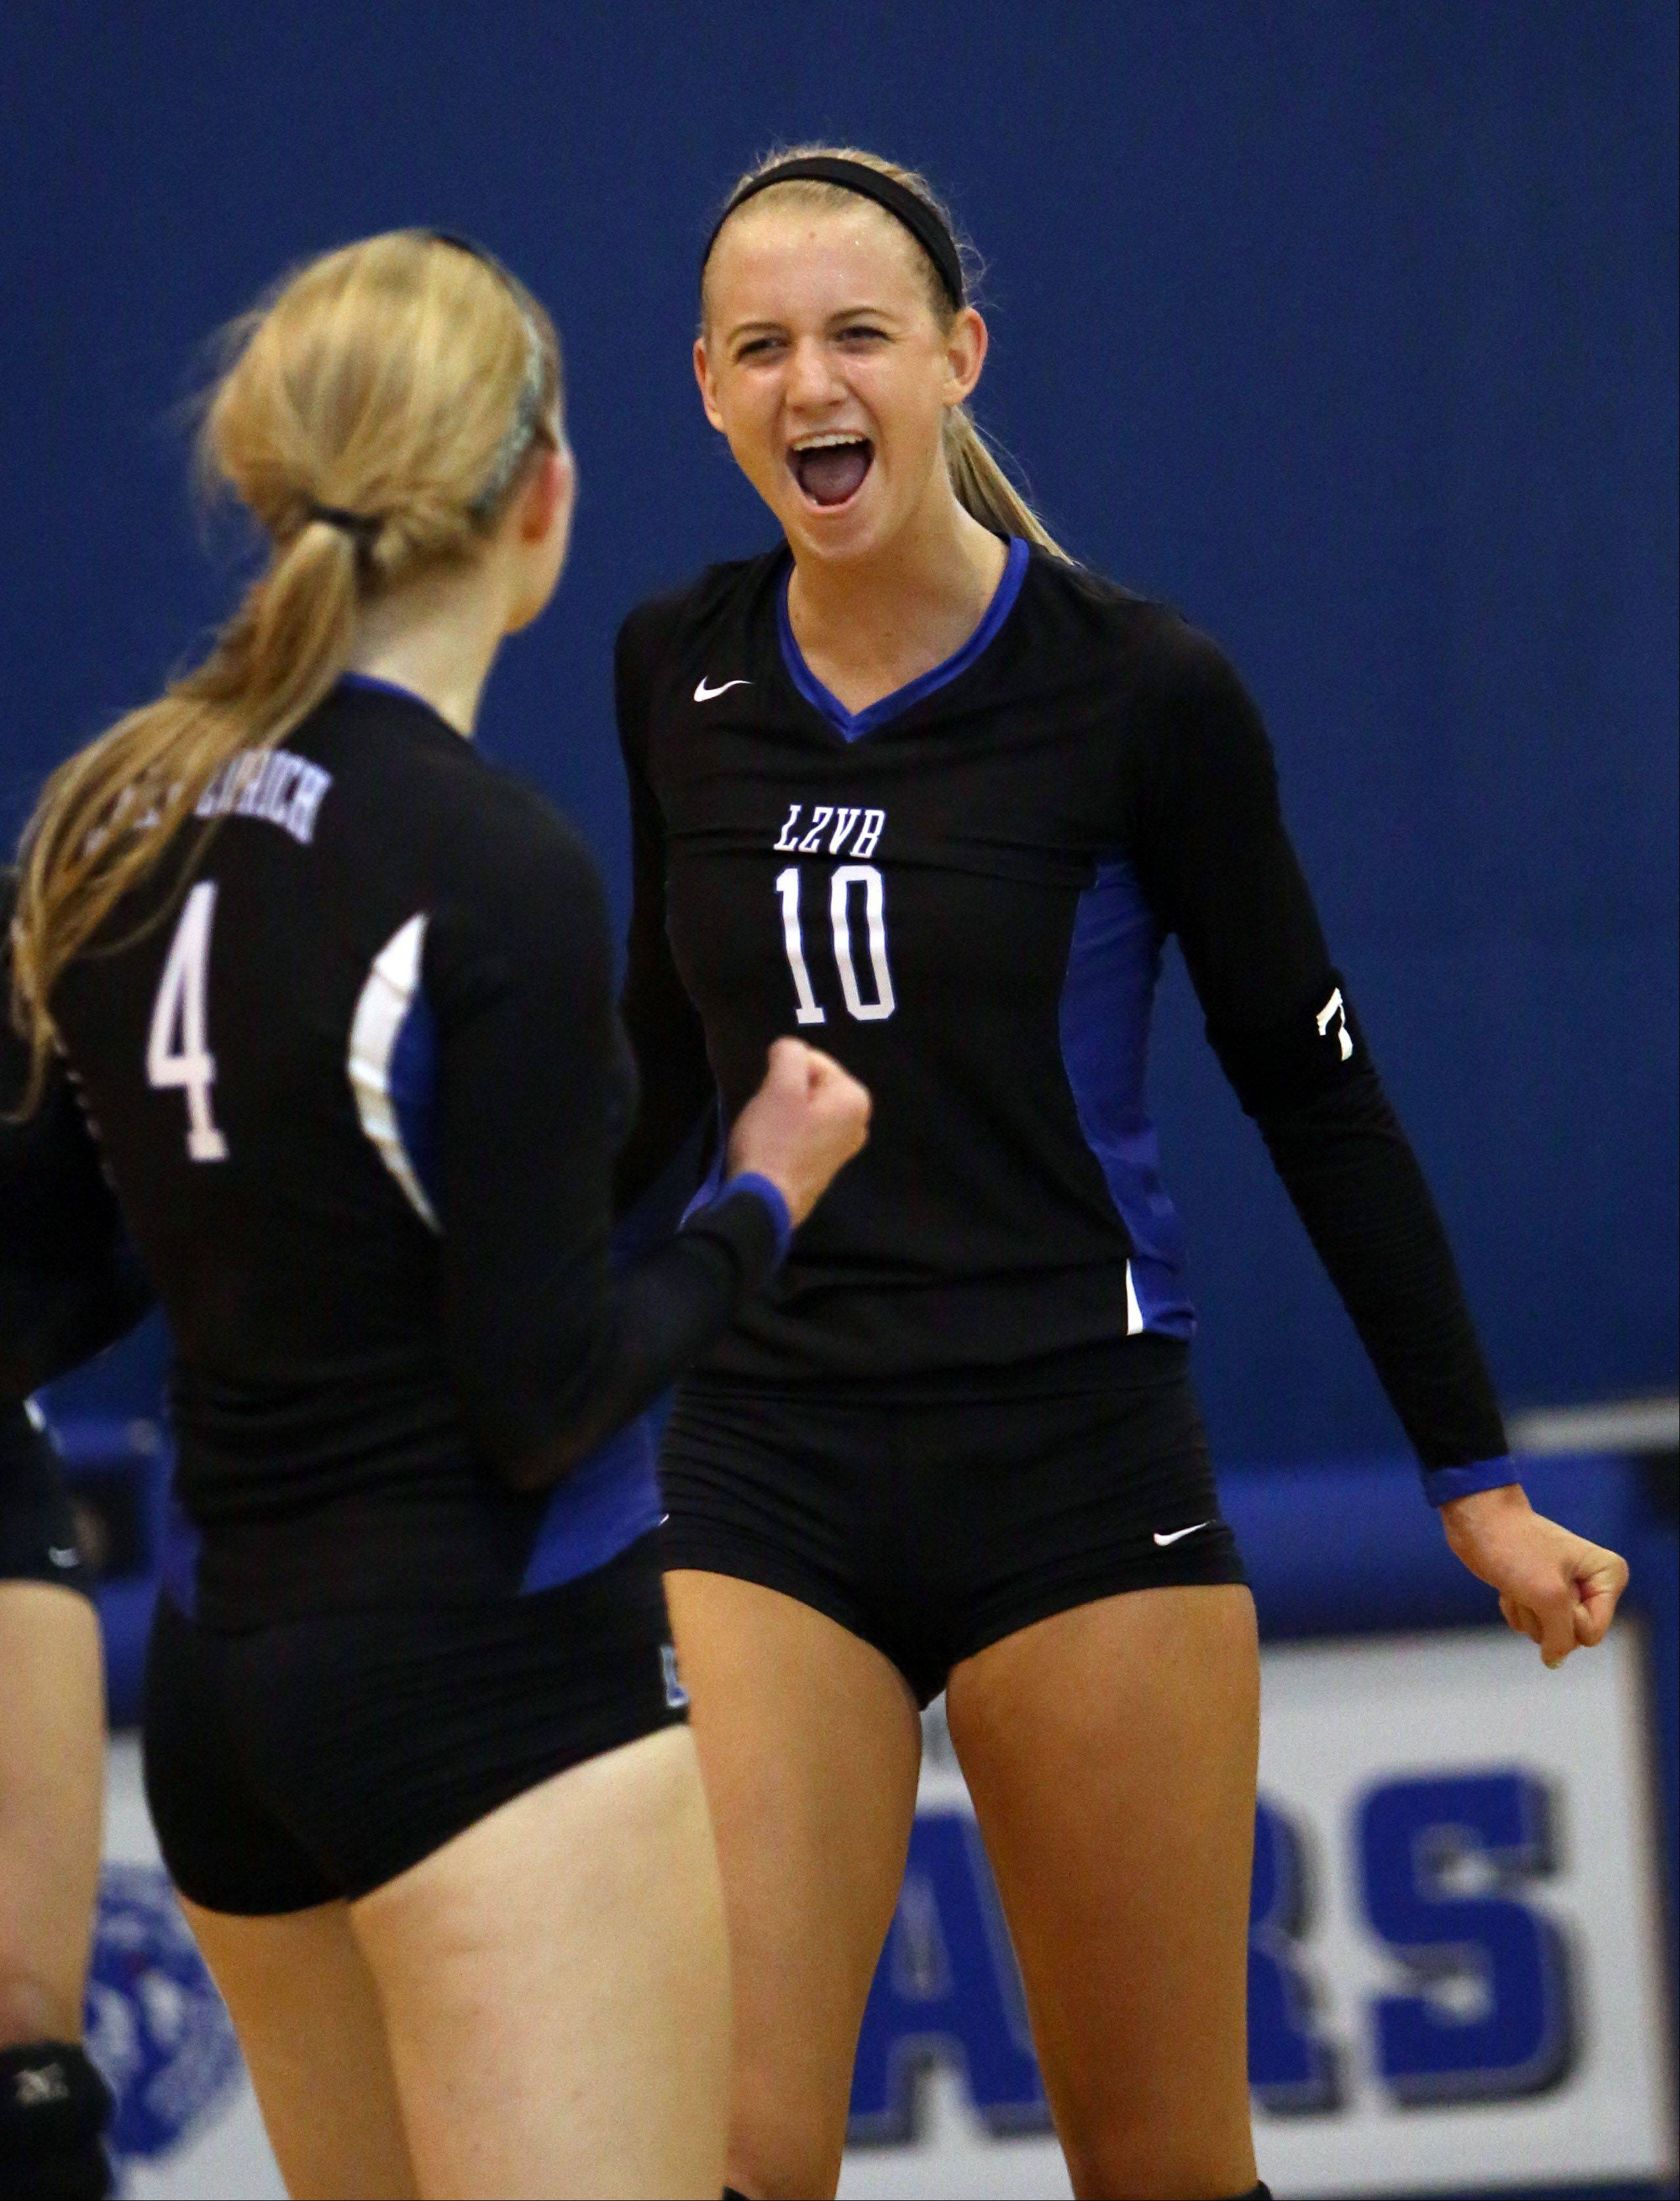 Lake Zurich's Kristen Walding, right, celebrates with teammate Kiley McPeek after winning a point against Carmel on Tuesday at Lake Zurich.